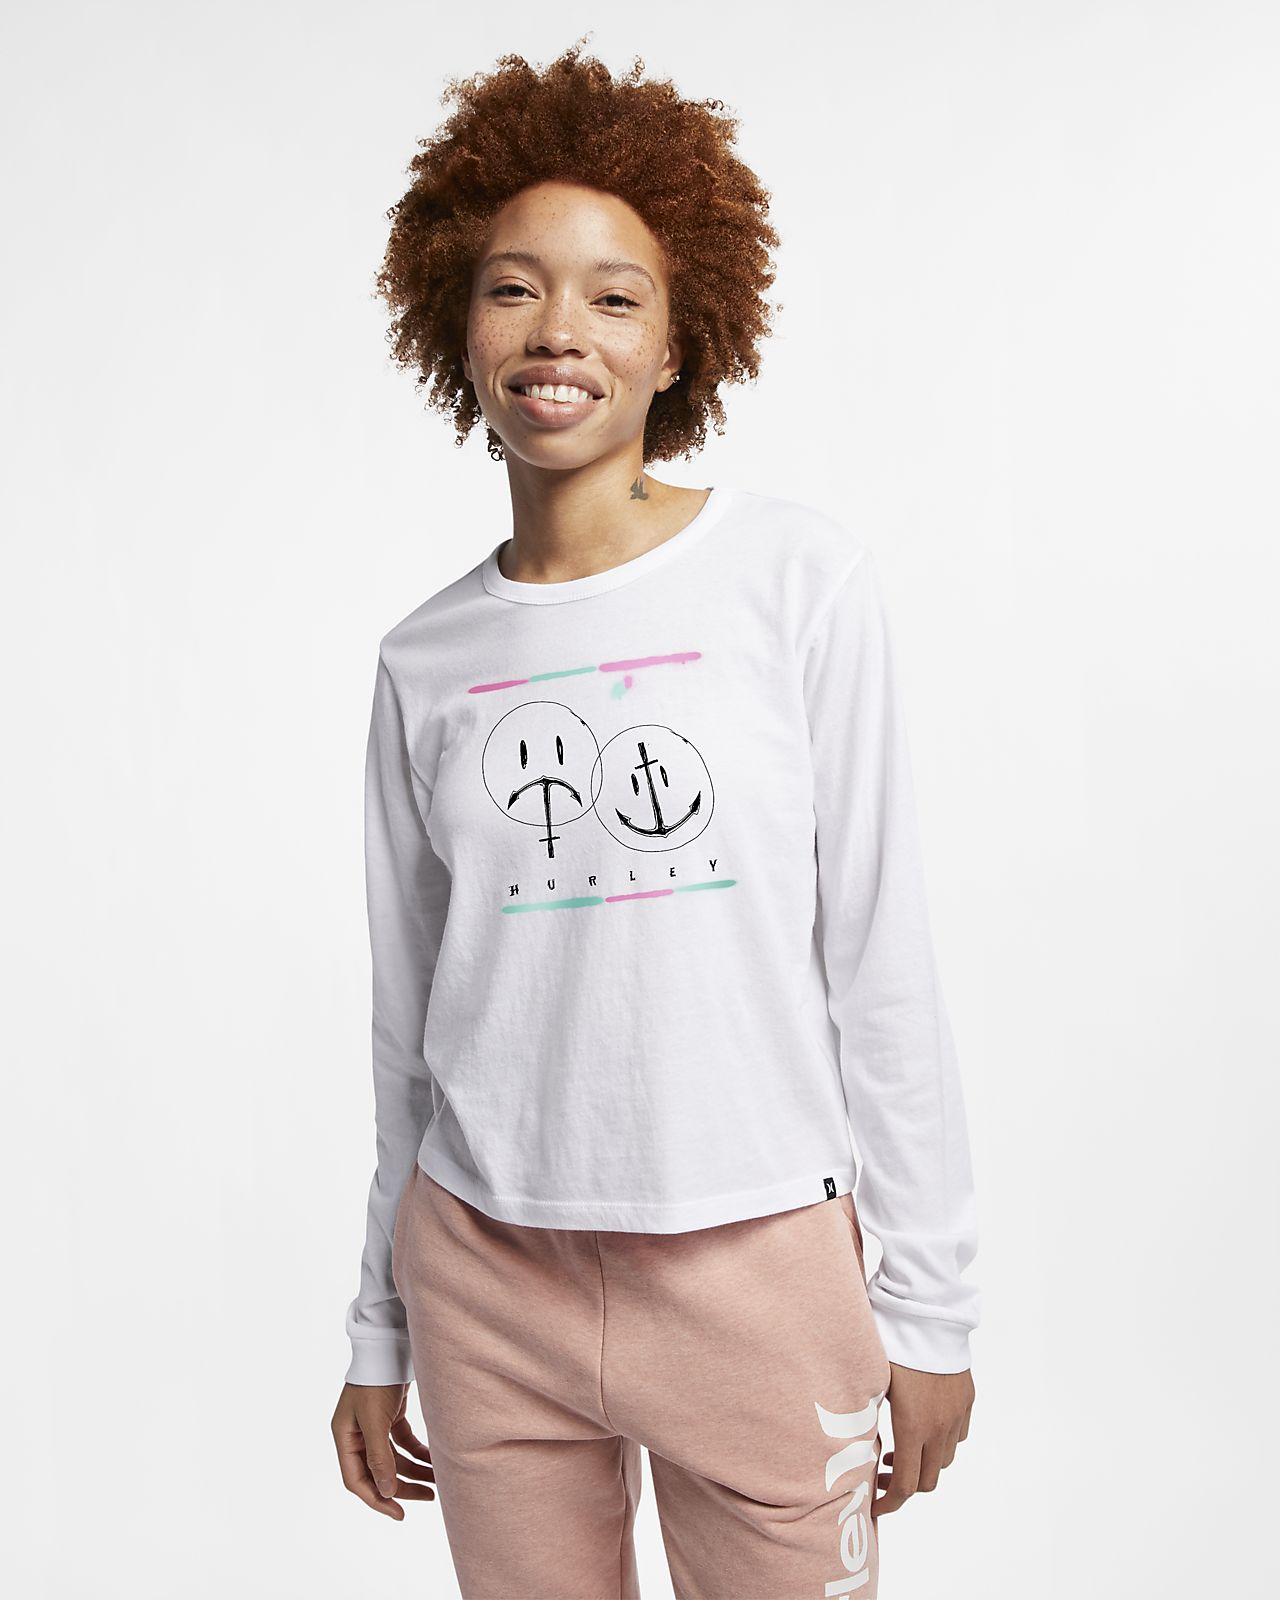 Hurley Laugh Now Shred Later Women's Long-Sleeve Top